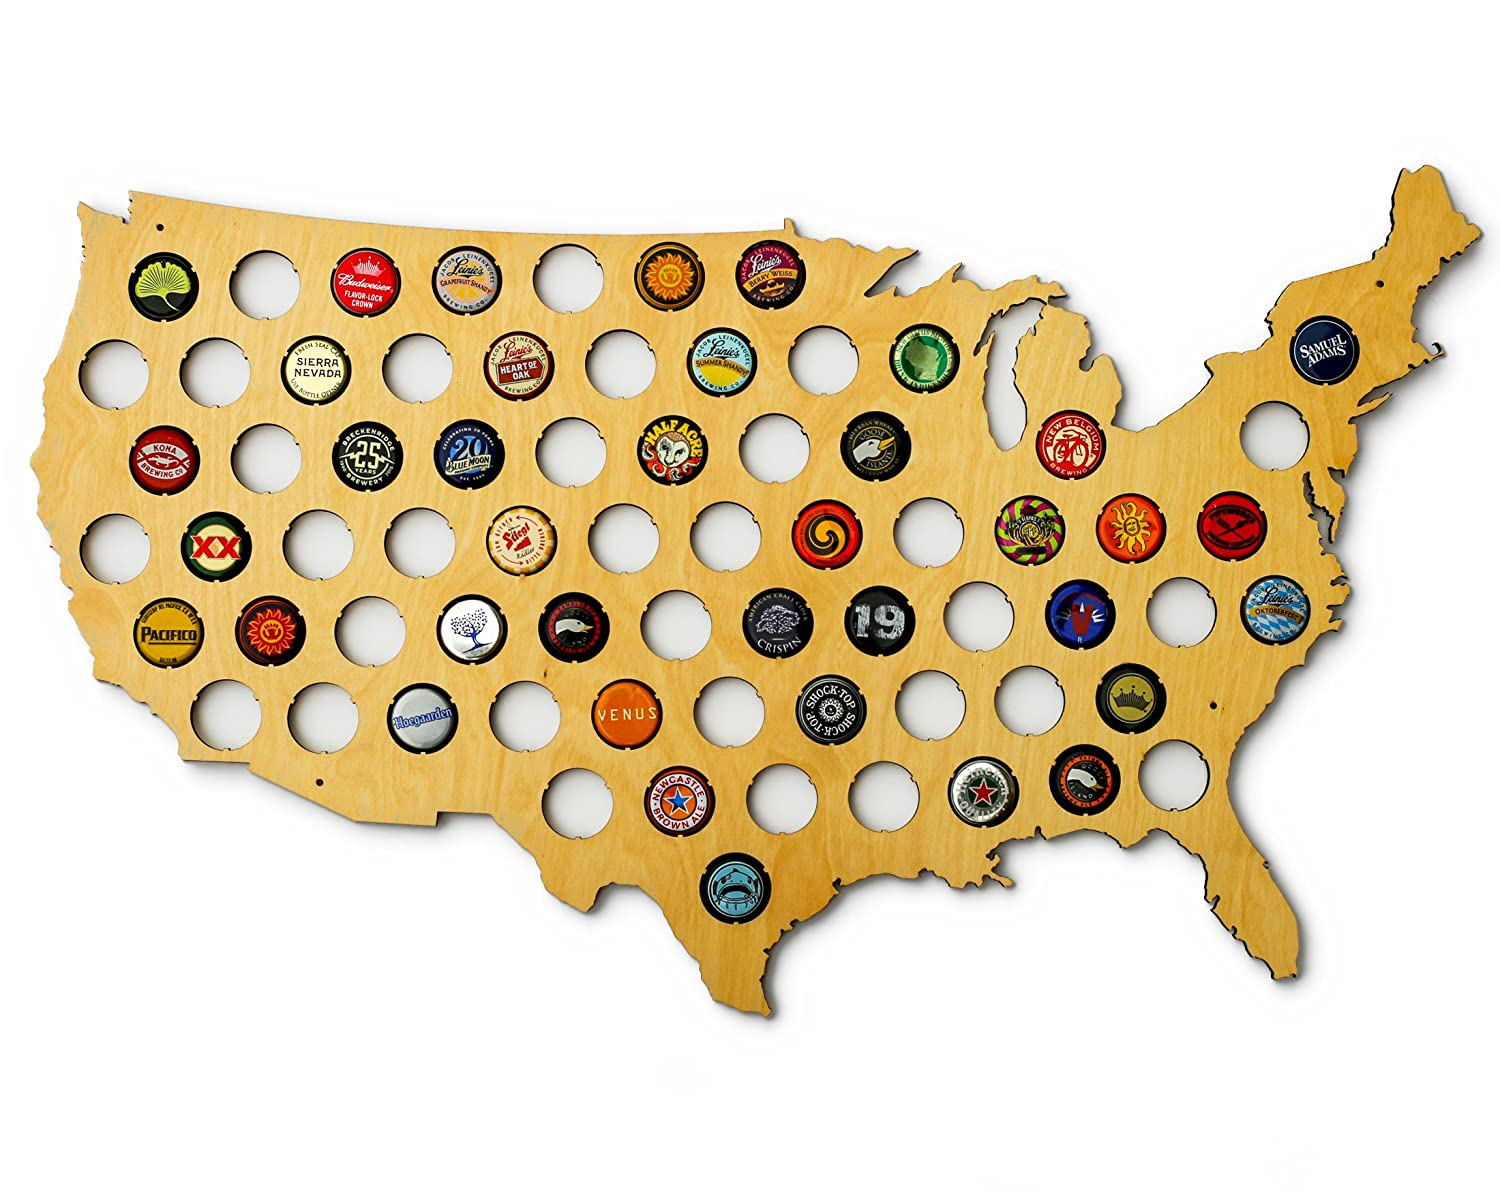 Amazoncom USA Beer Cap Map Ultra Detailed Glossy Wood Bottle - Us beer map wall art